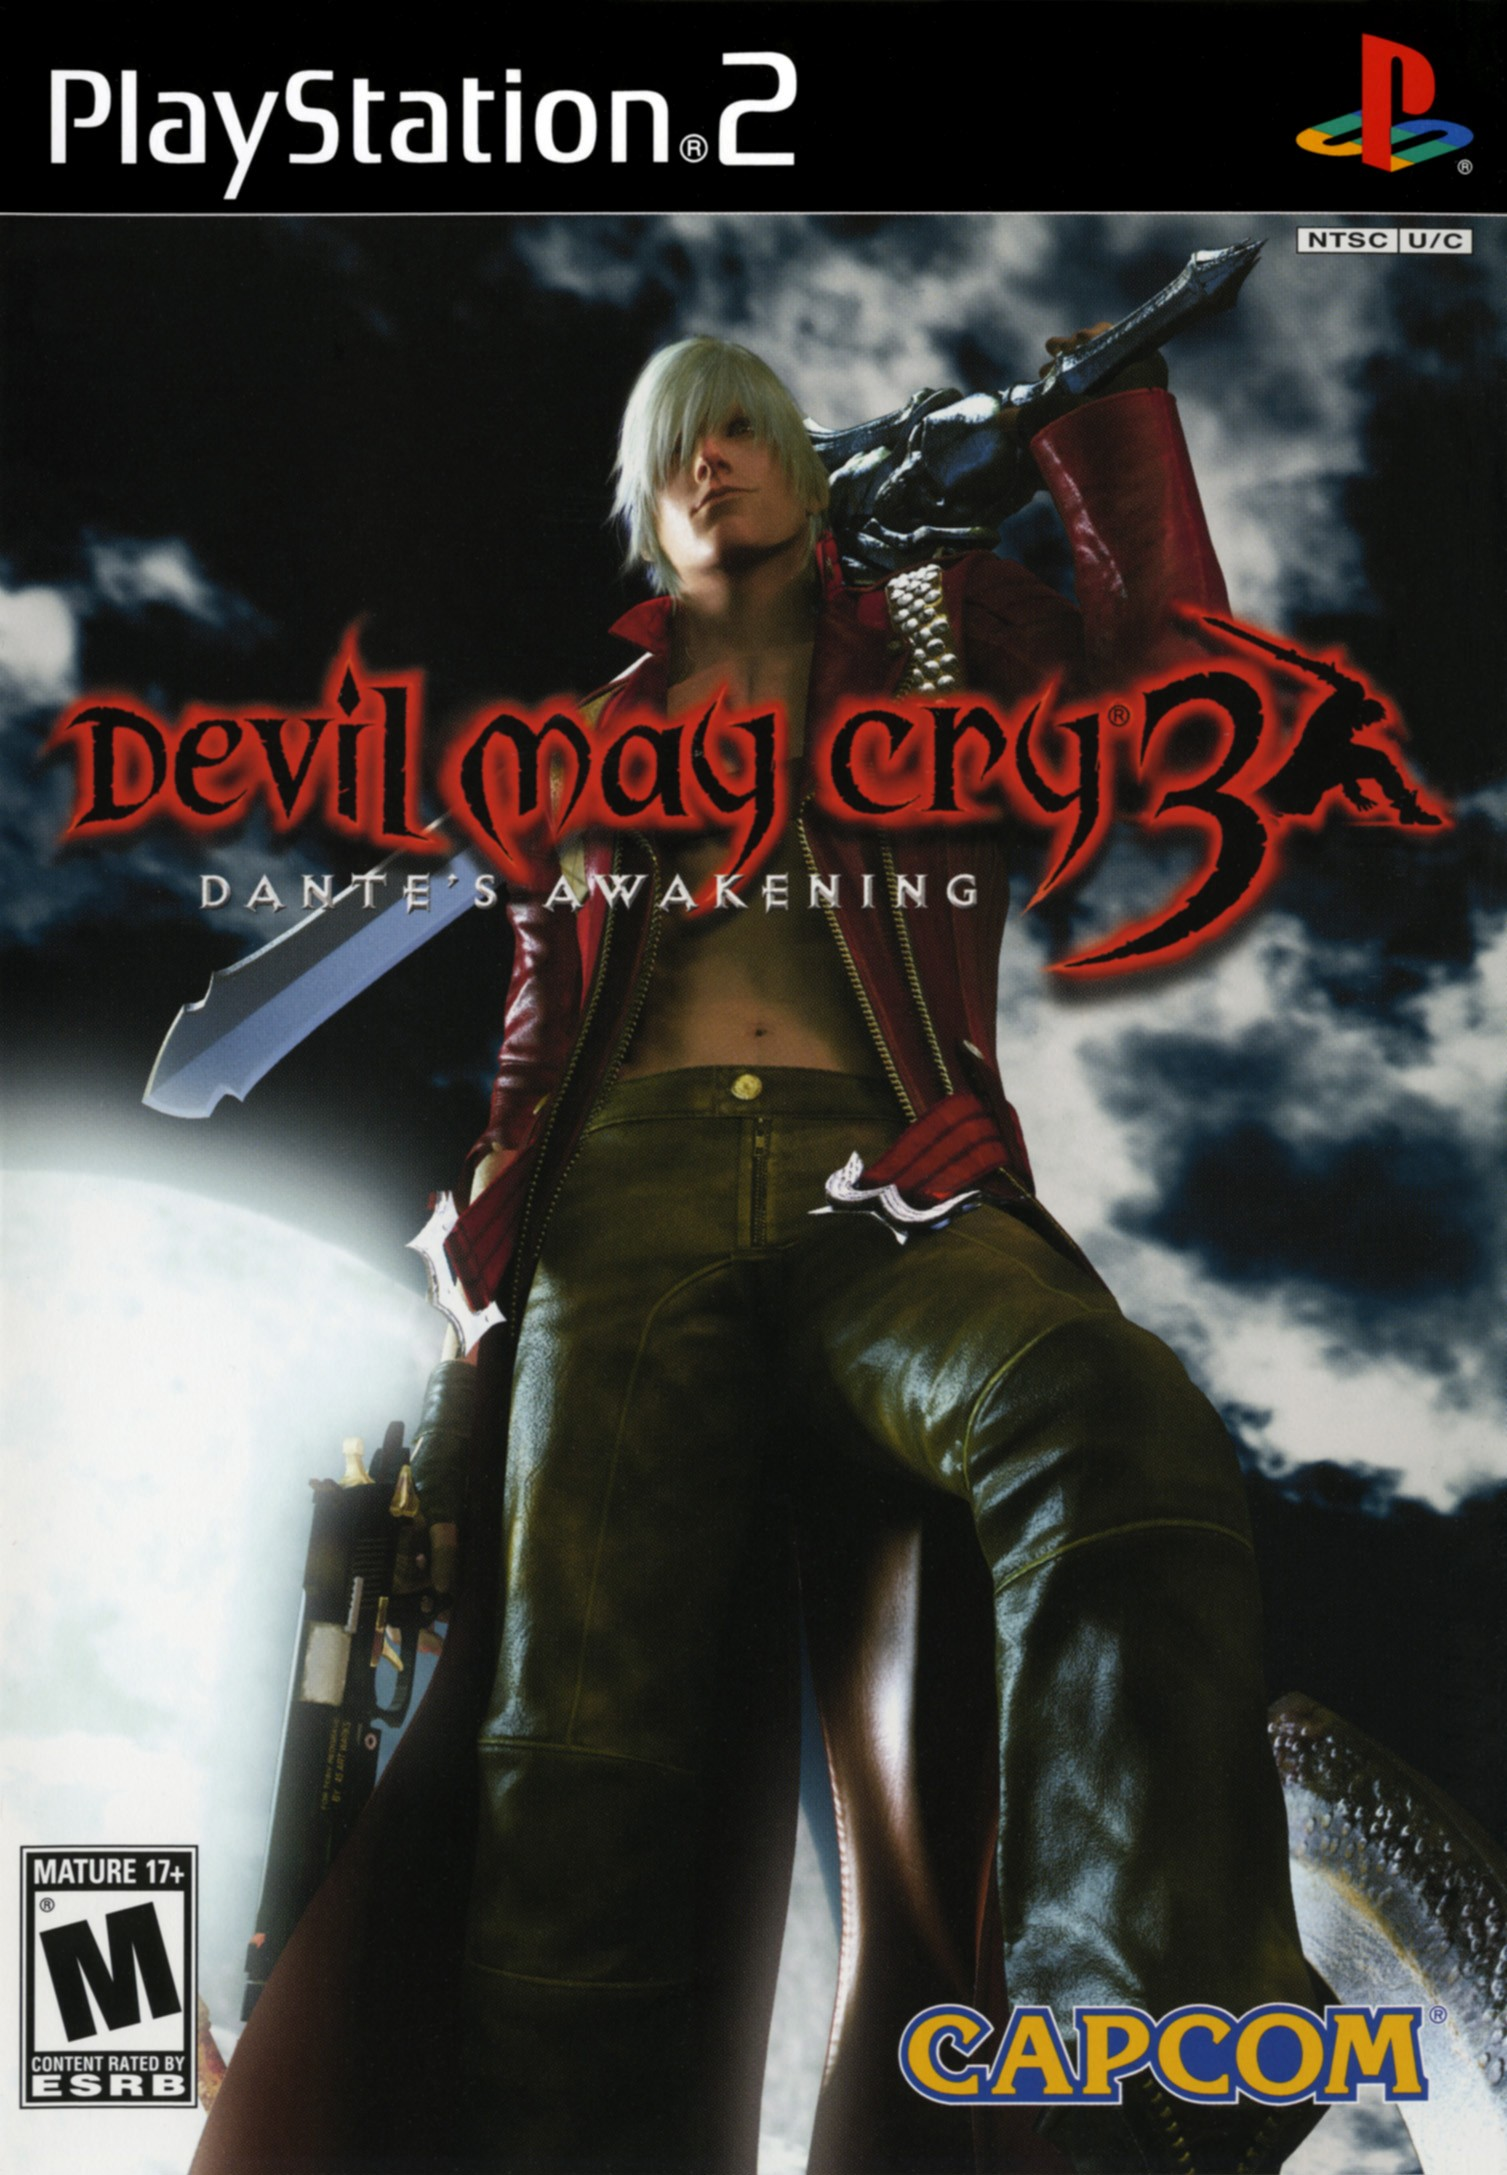 http://images2.wikia.nocookie.net/devilmaycry/images/8/8d/DMC3FrontCover.jpg